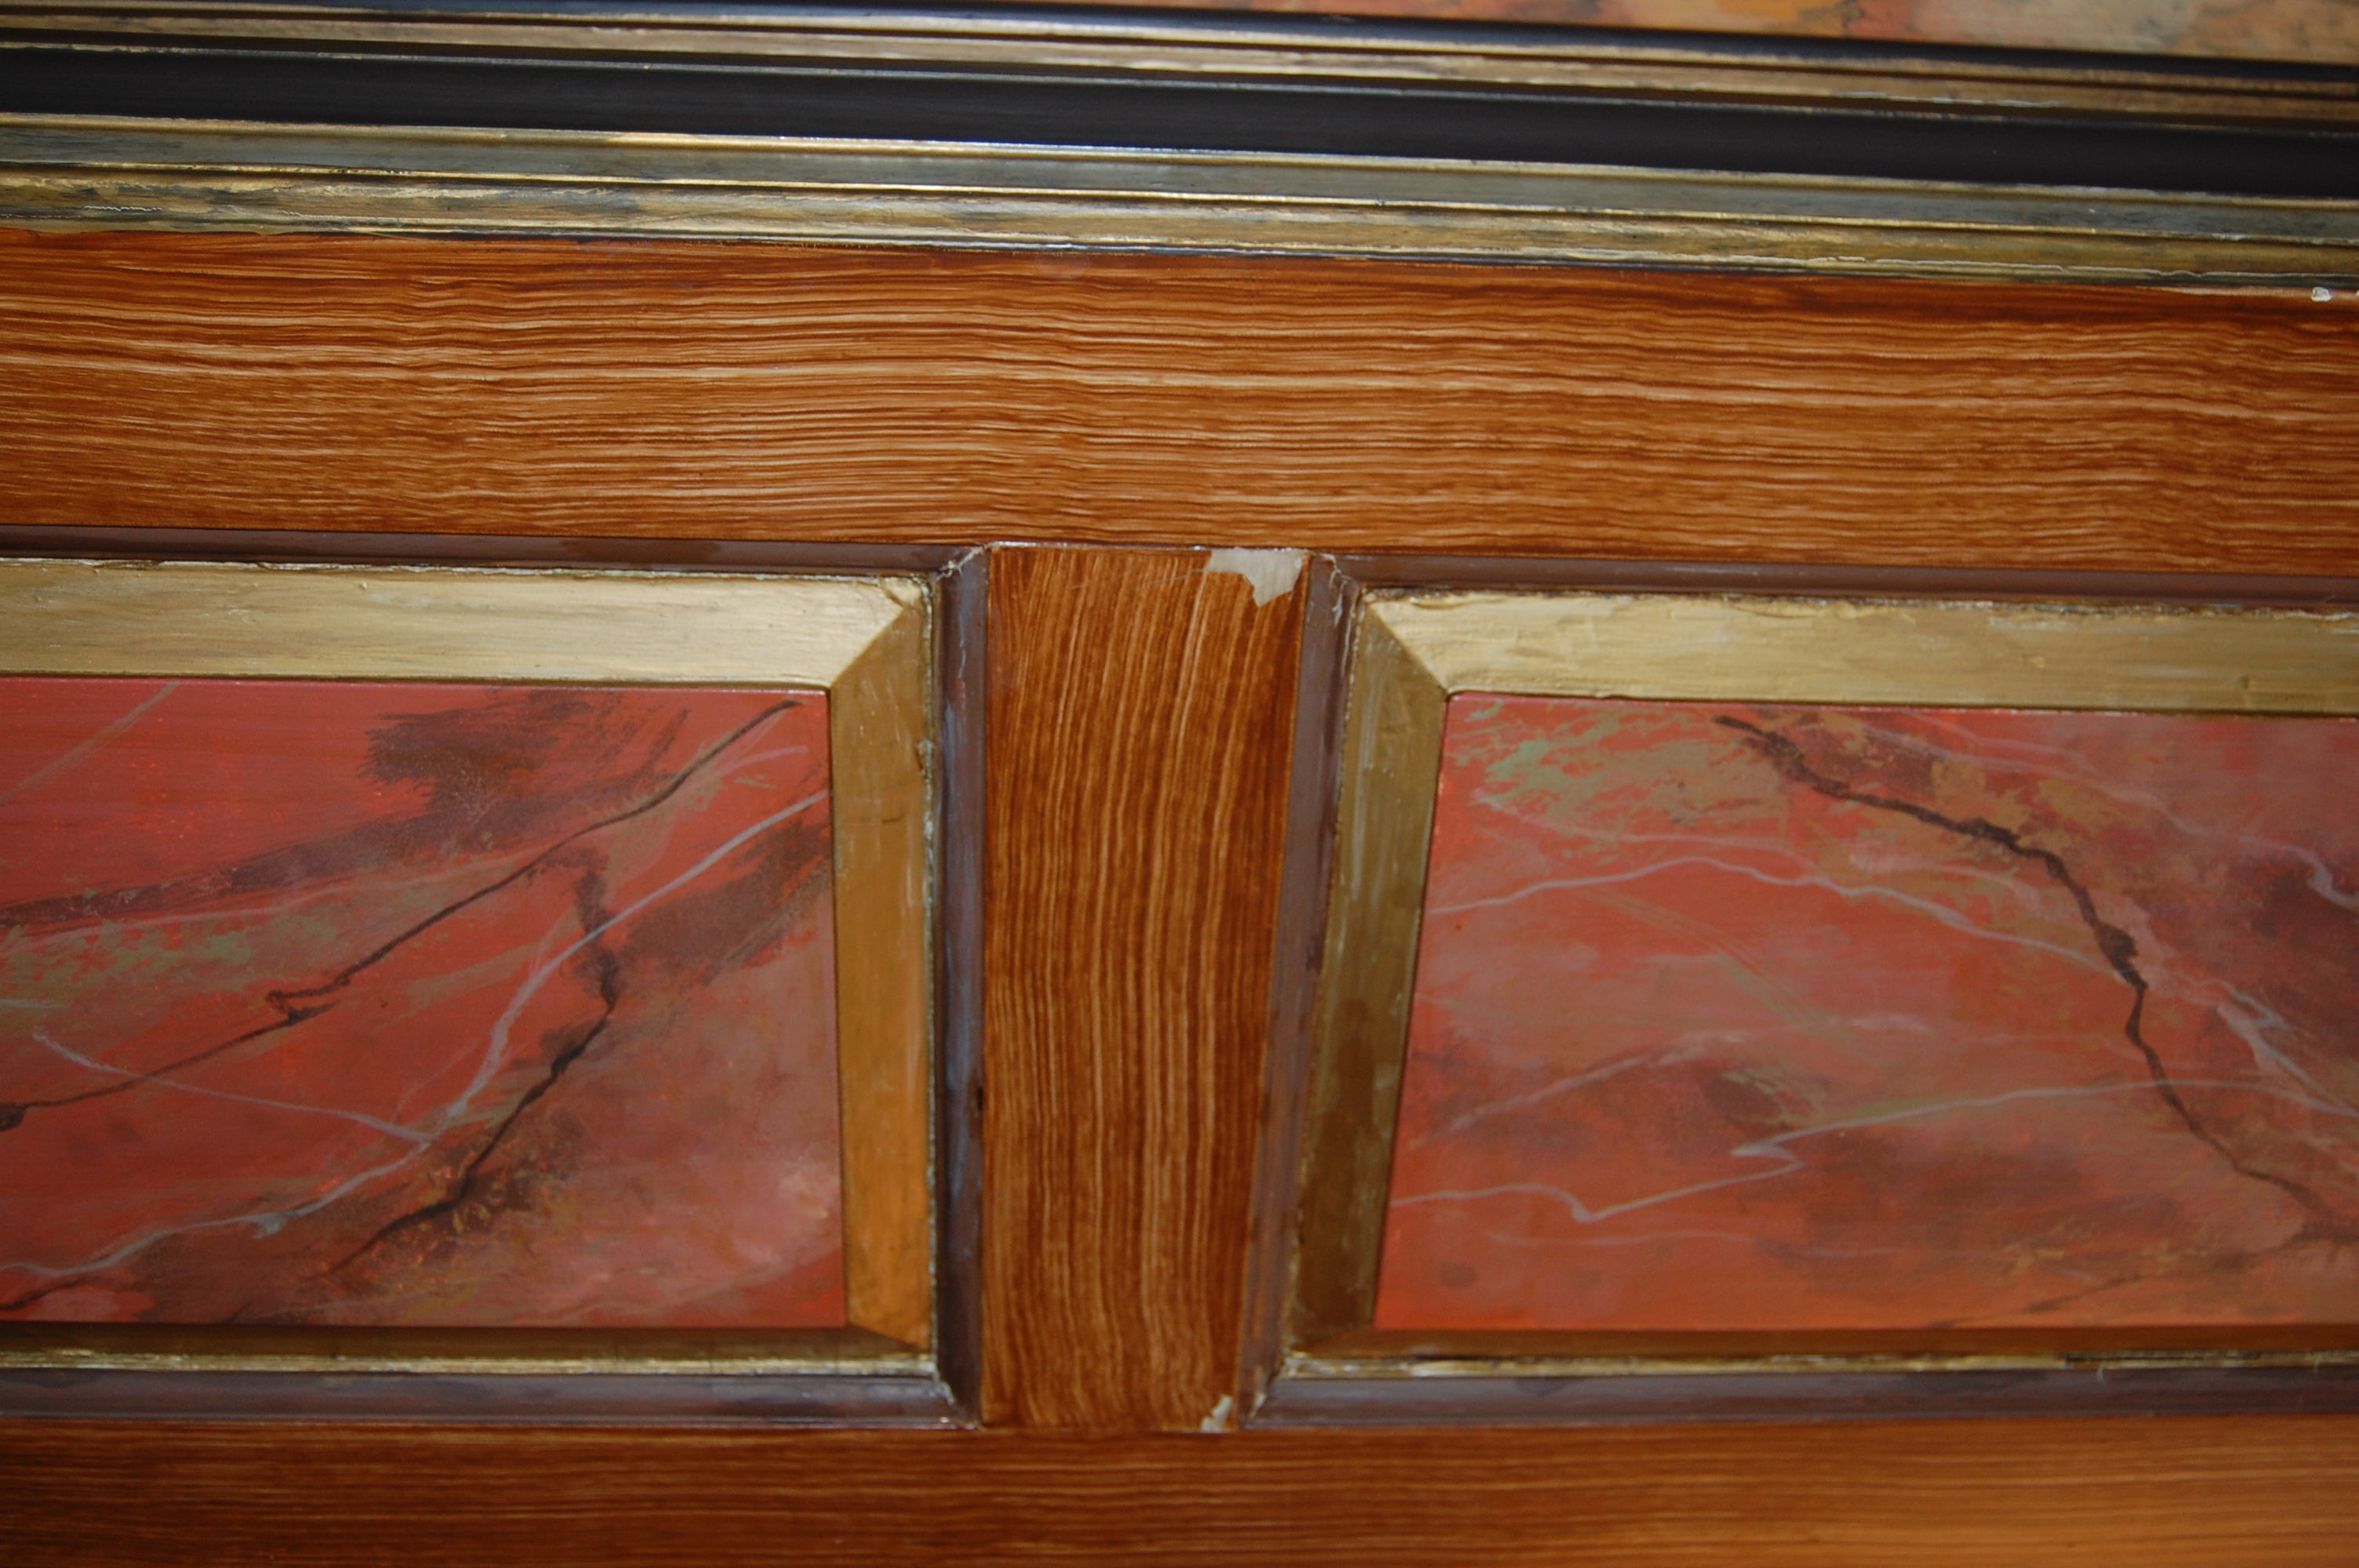 Water Damage to Faux Finishes